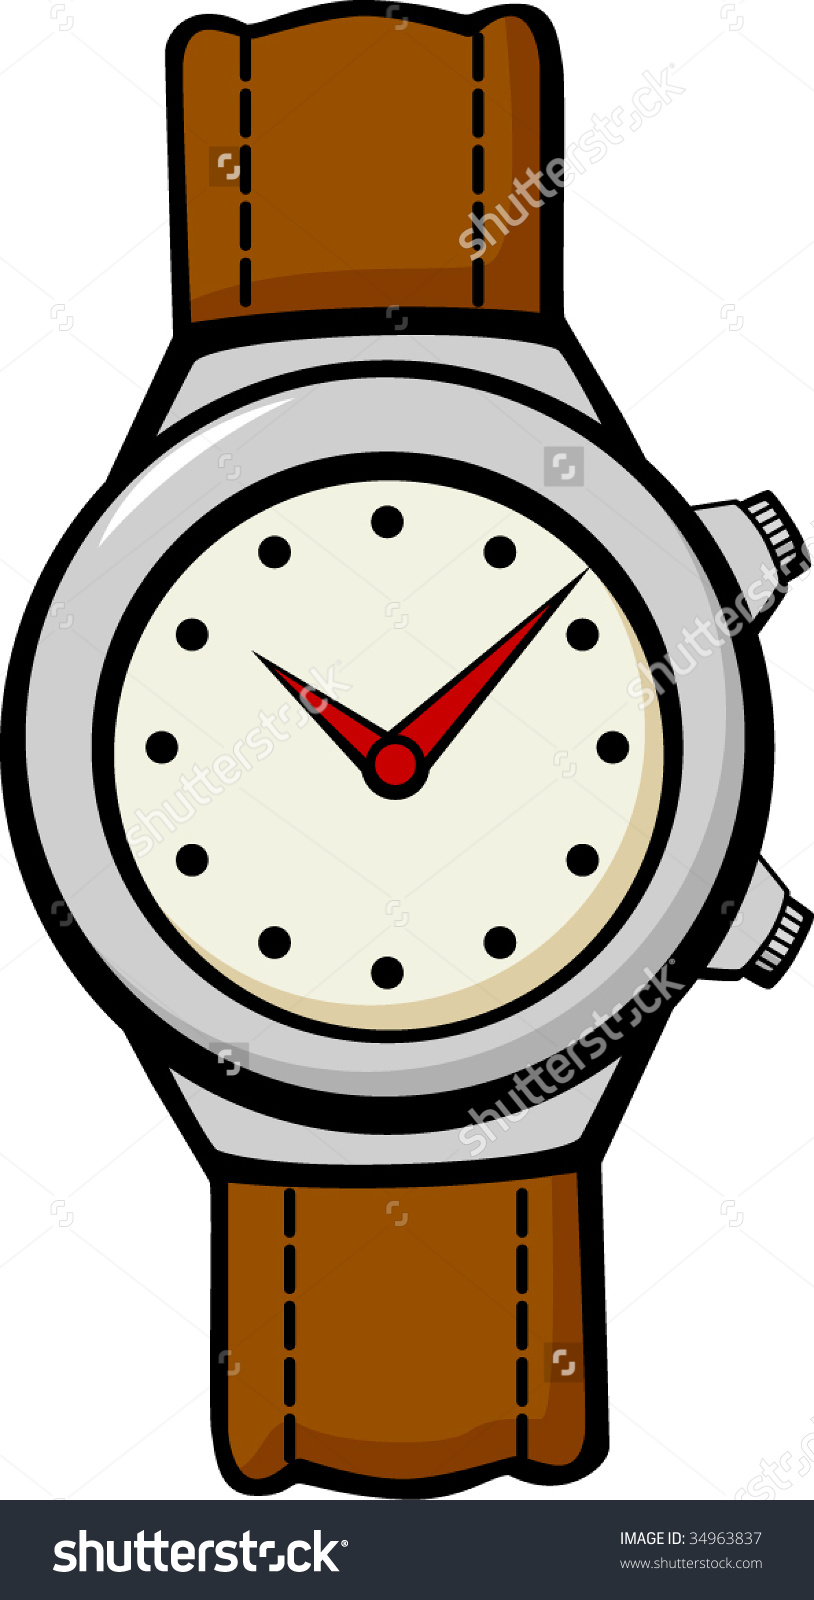 Kids wrist watch clipart.